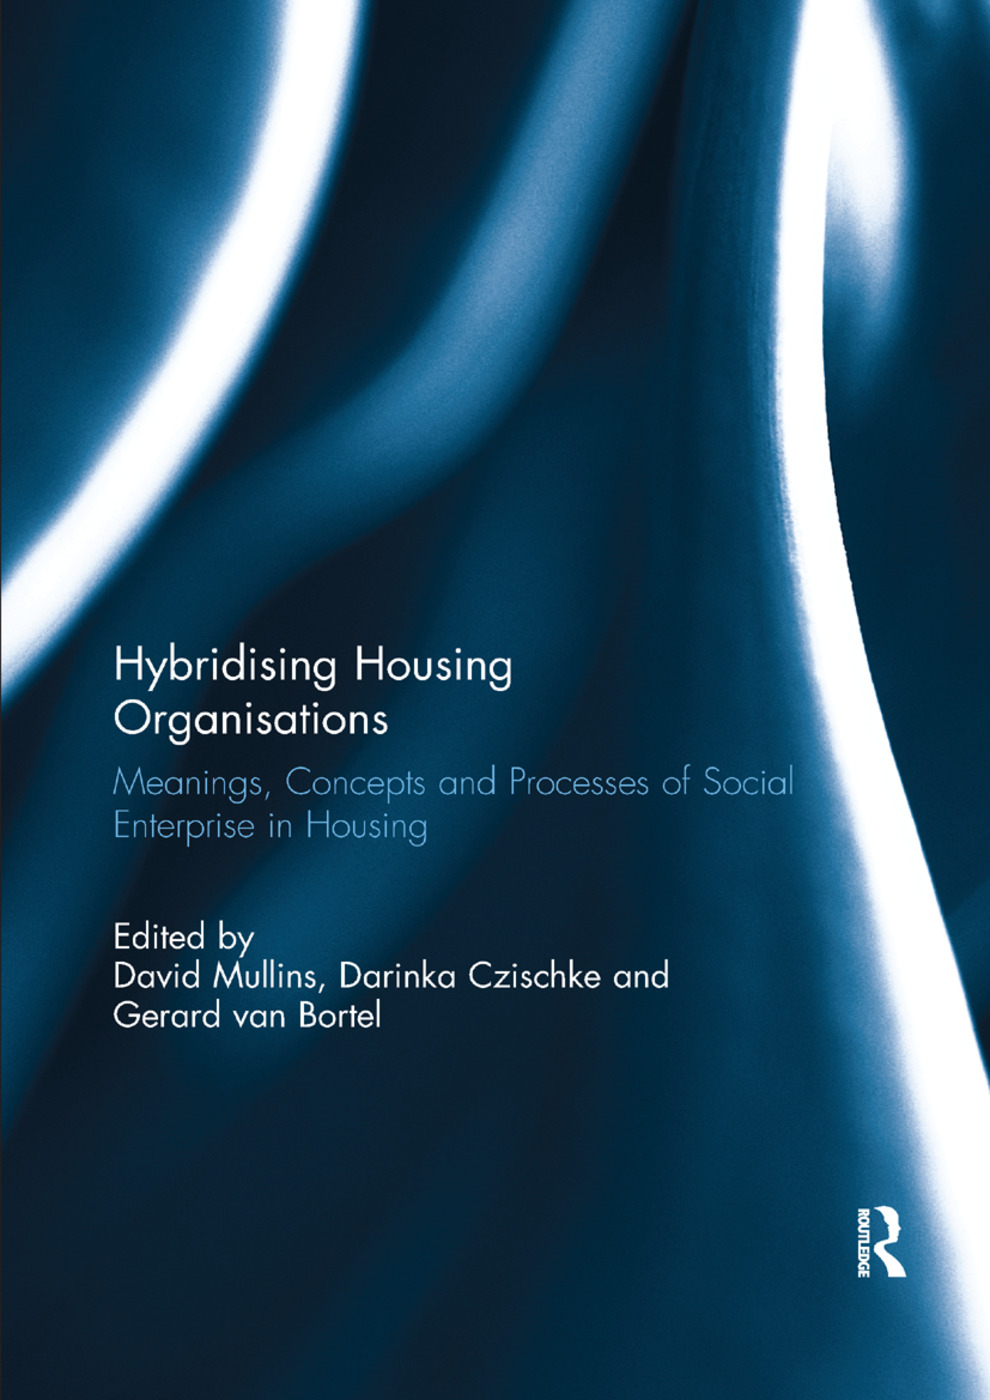 Hybridising Housing Organisations: Meanings, Concepts and Processes of Social Enterprise in Housing book cover